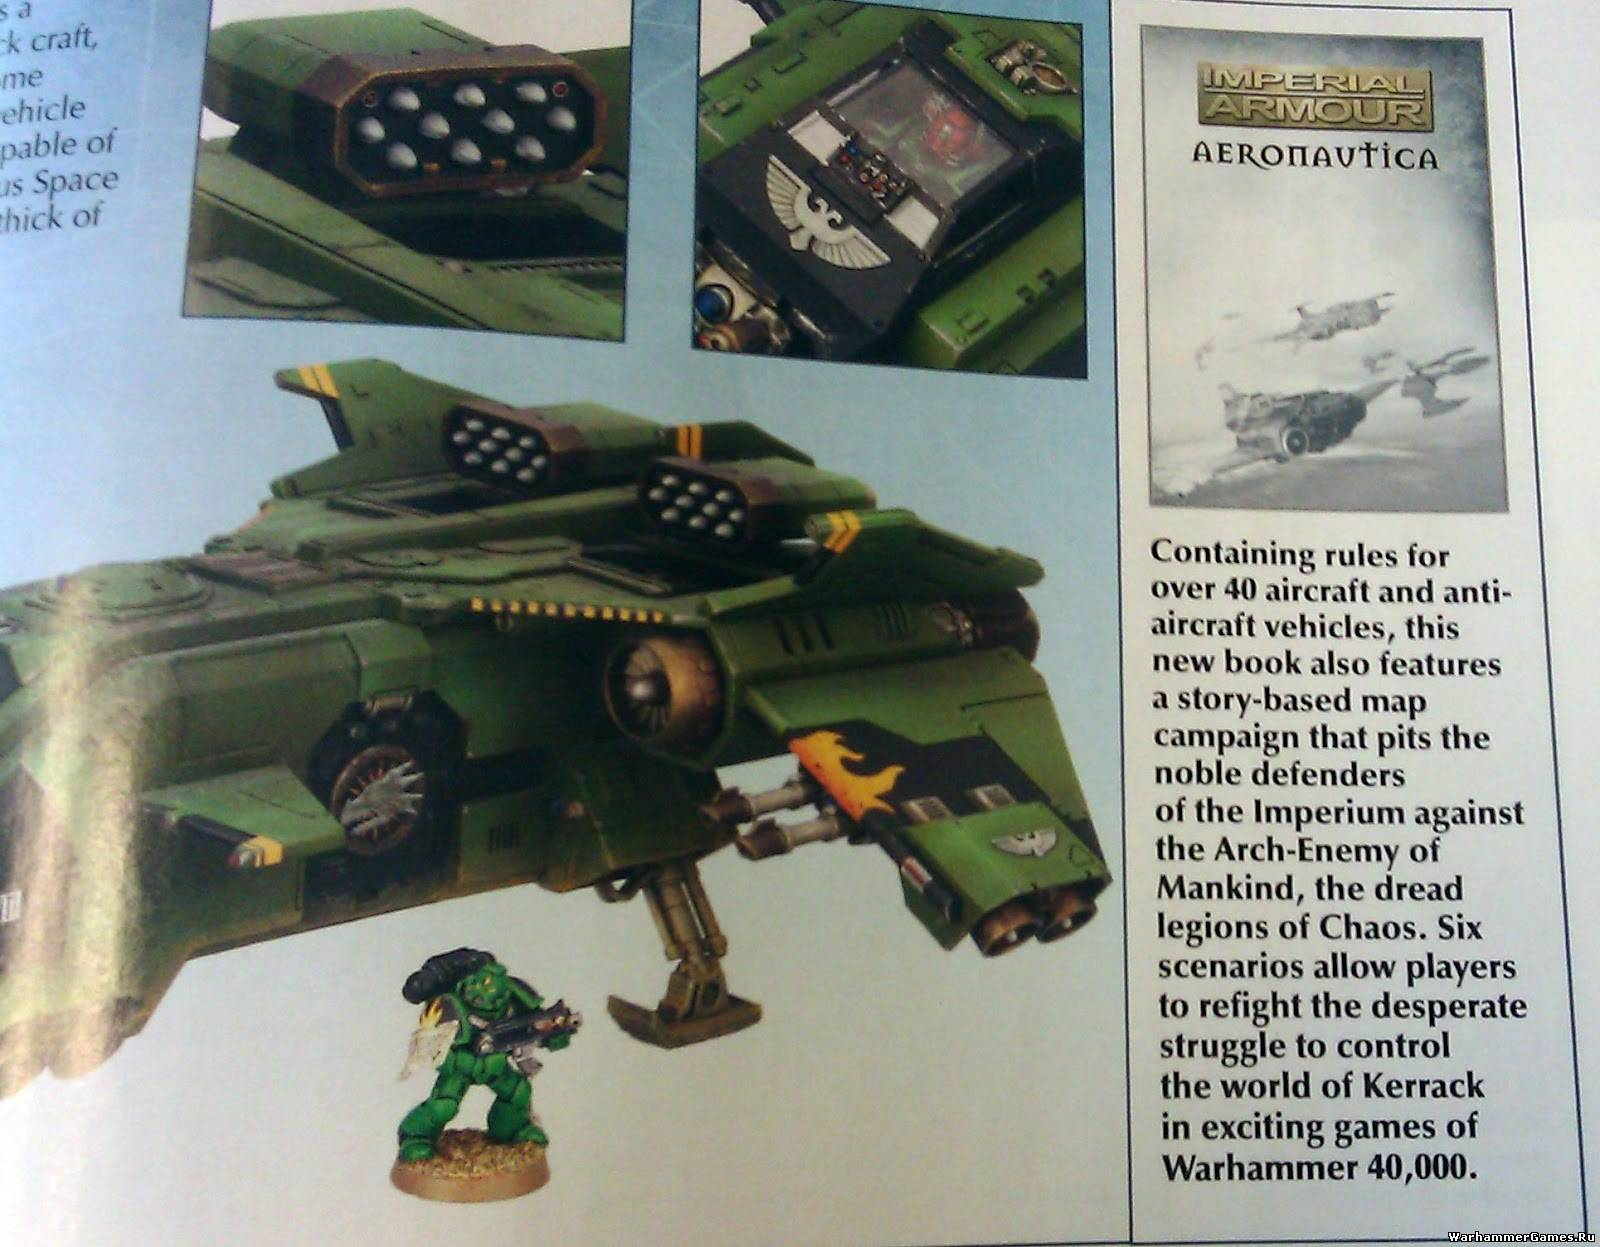 Imperial Armour: Aeronavtica